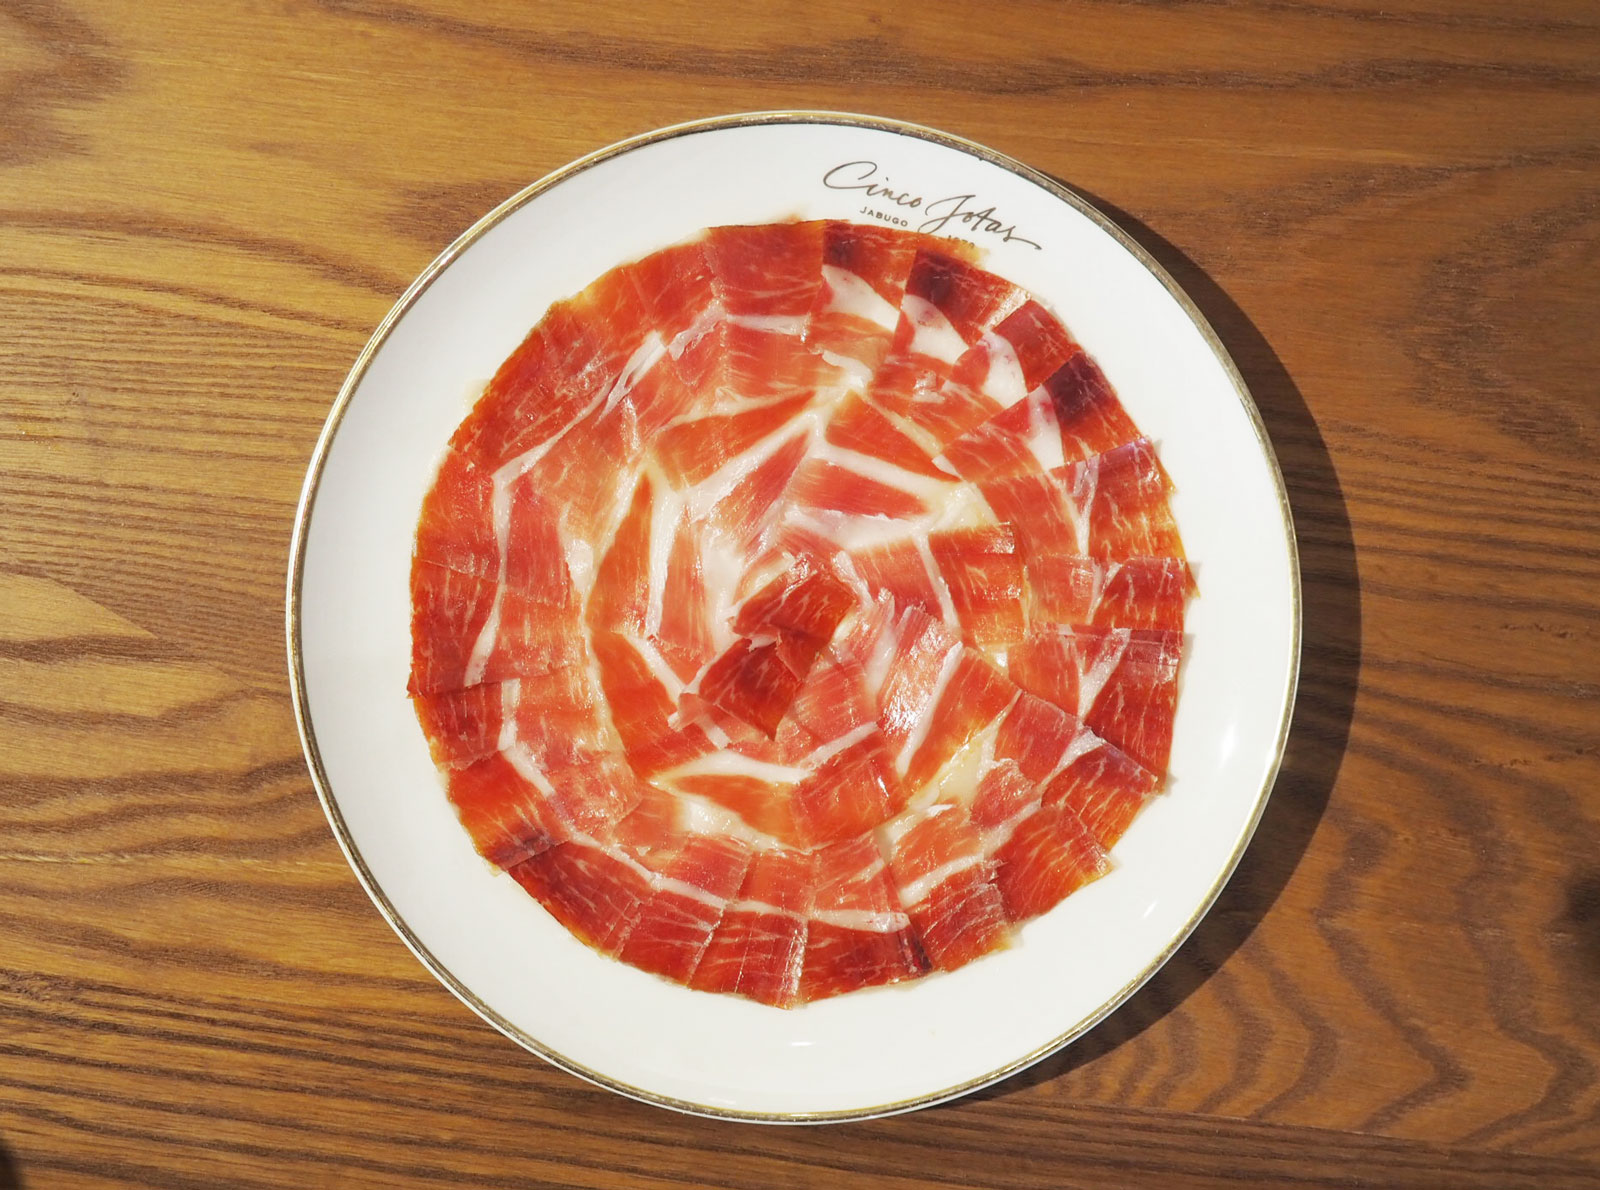 How to Buy Jamón Ibérico: What to Look for and Where to Get It